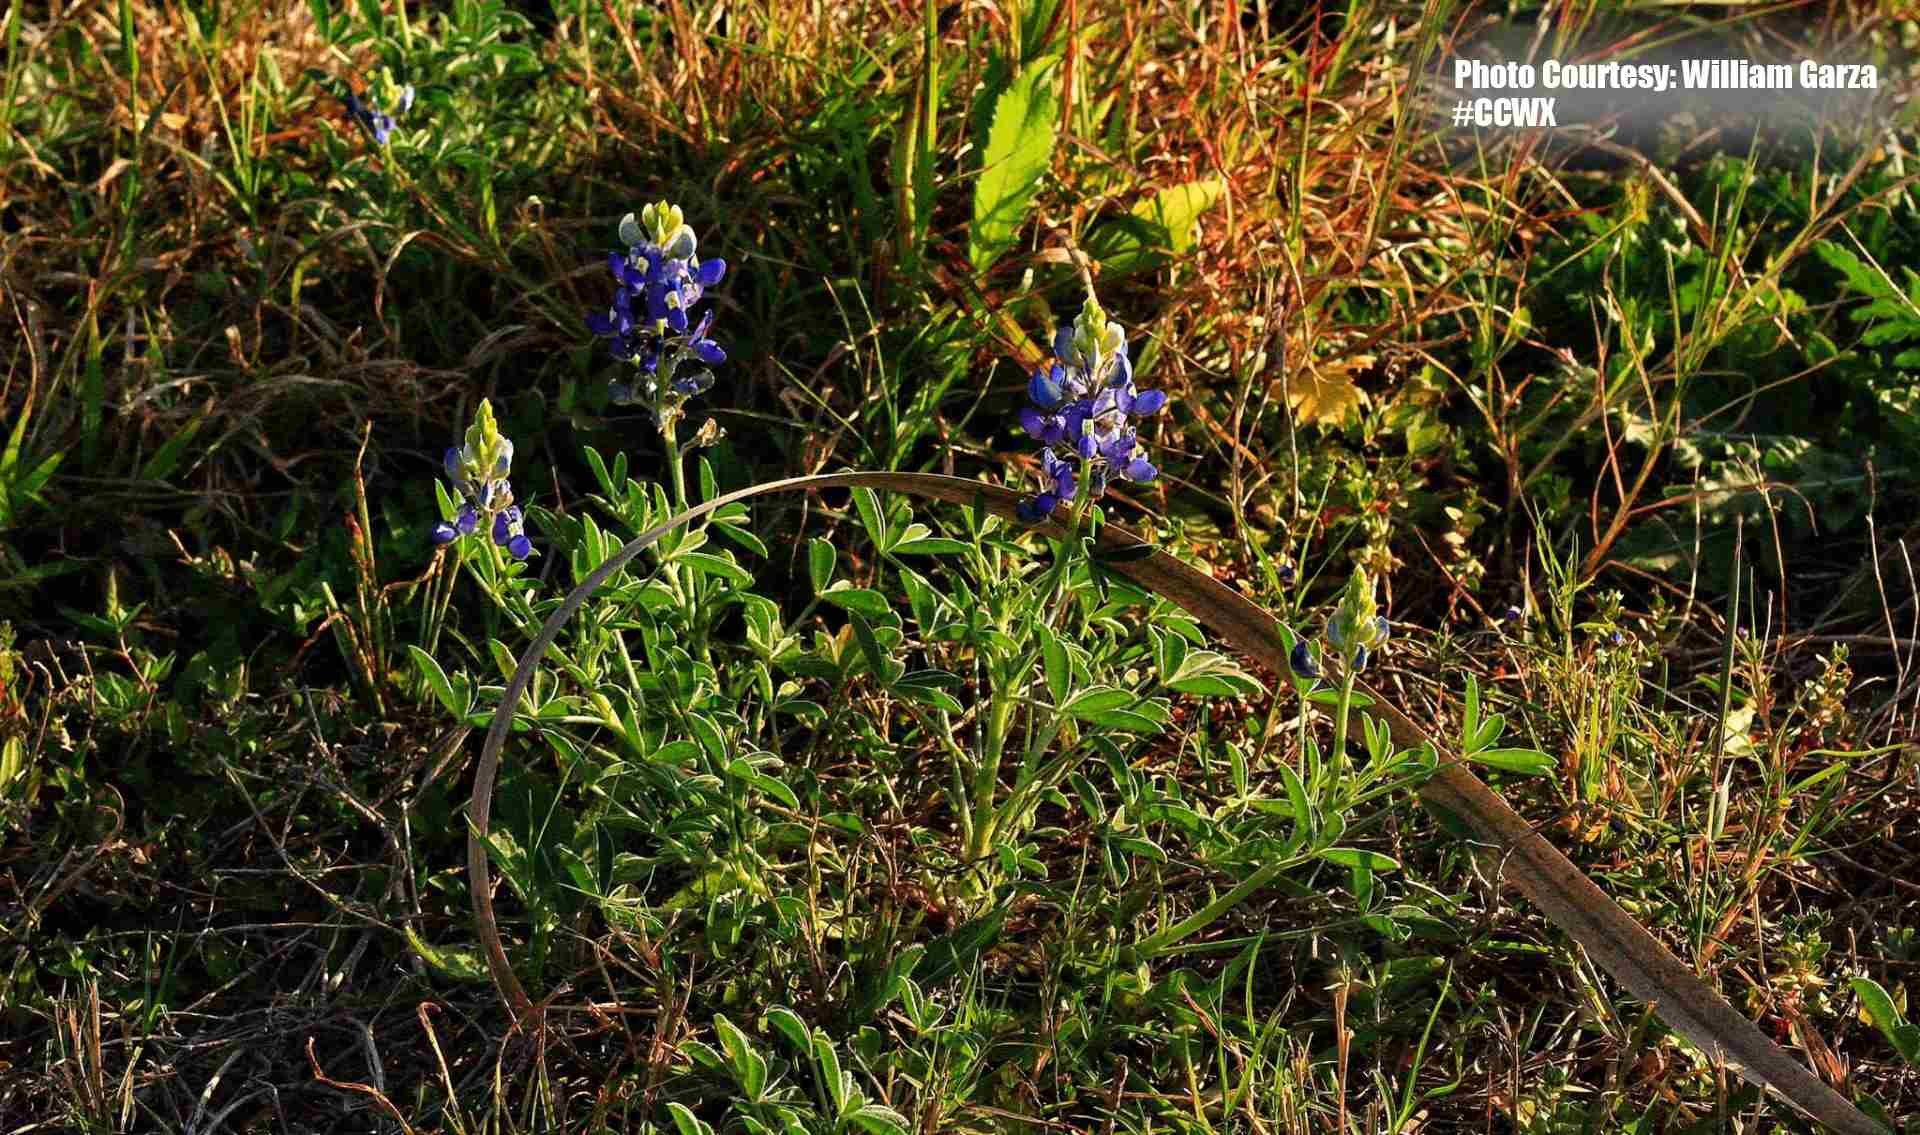 Photo Courtesy: William Garza 3/1/16 of Bluebonnets.